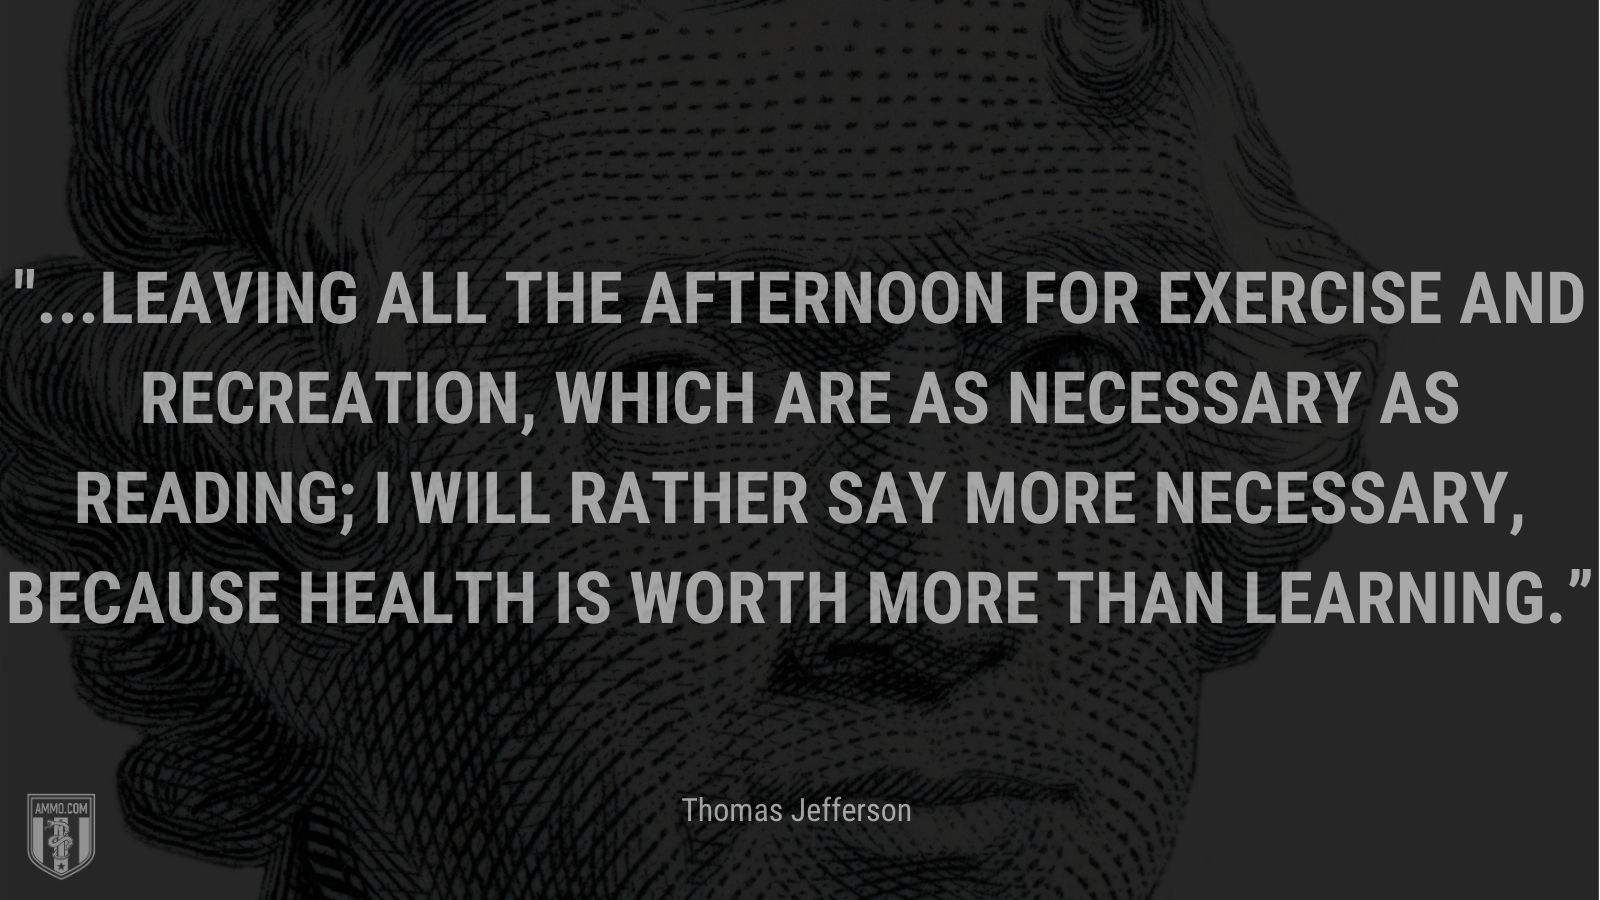 """""""...leaving all the afternoon for exercise and recreation, which are as necessary as reading; I will rather say more necessary, because health is worth more than learning."""" - Thomas Jefferson"""